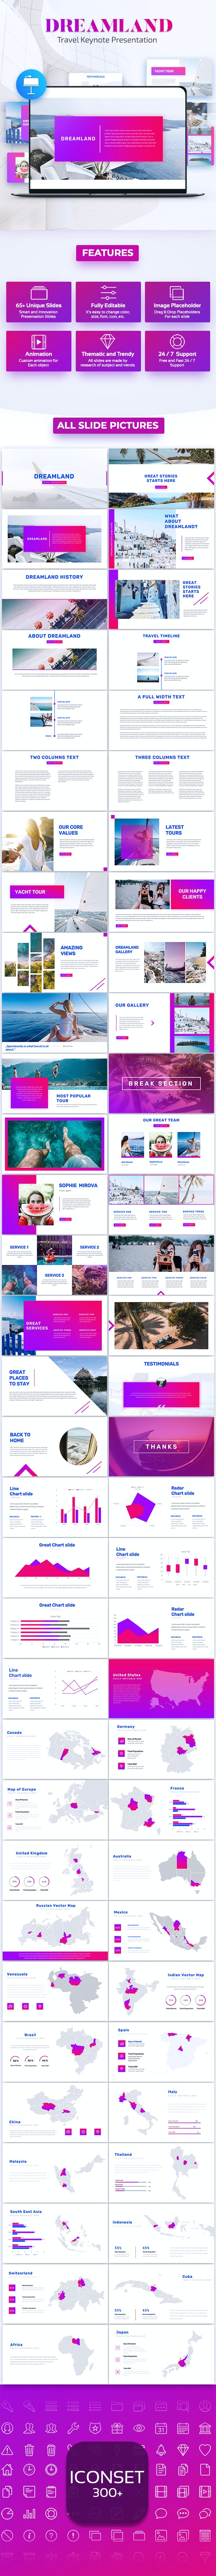 Dreamland - Travel Keynote Template - Keynote Templates Presentation Templates